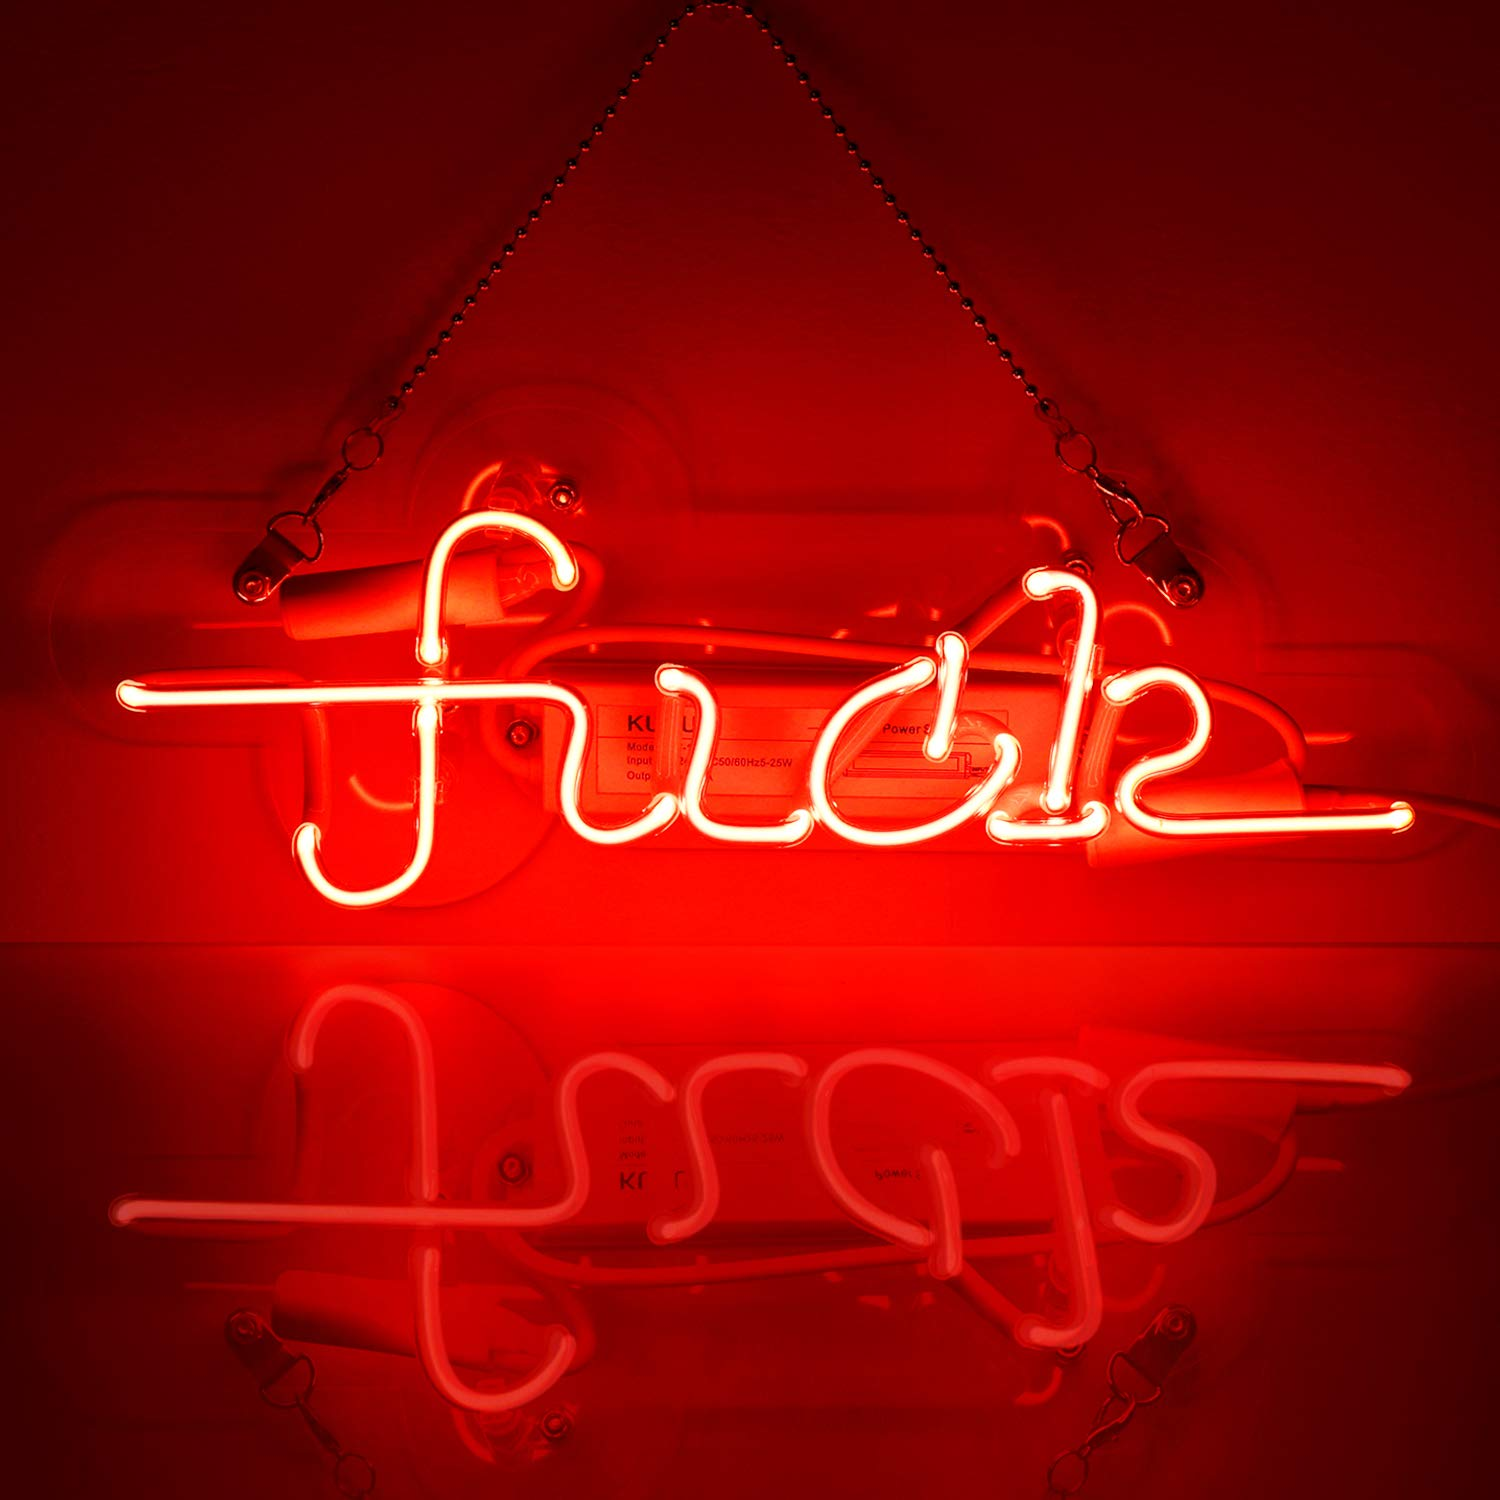 Neon Signs Fuck Light Neon Light Sign Hanging Wall Sign Neon Girls Sign Neon Words Real Neon for Wall Home Bedroom Room Decor Bar Beer Decoration Signs